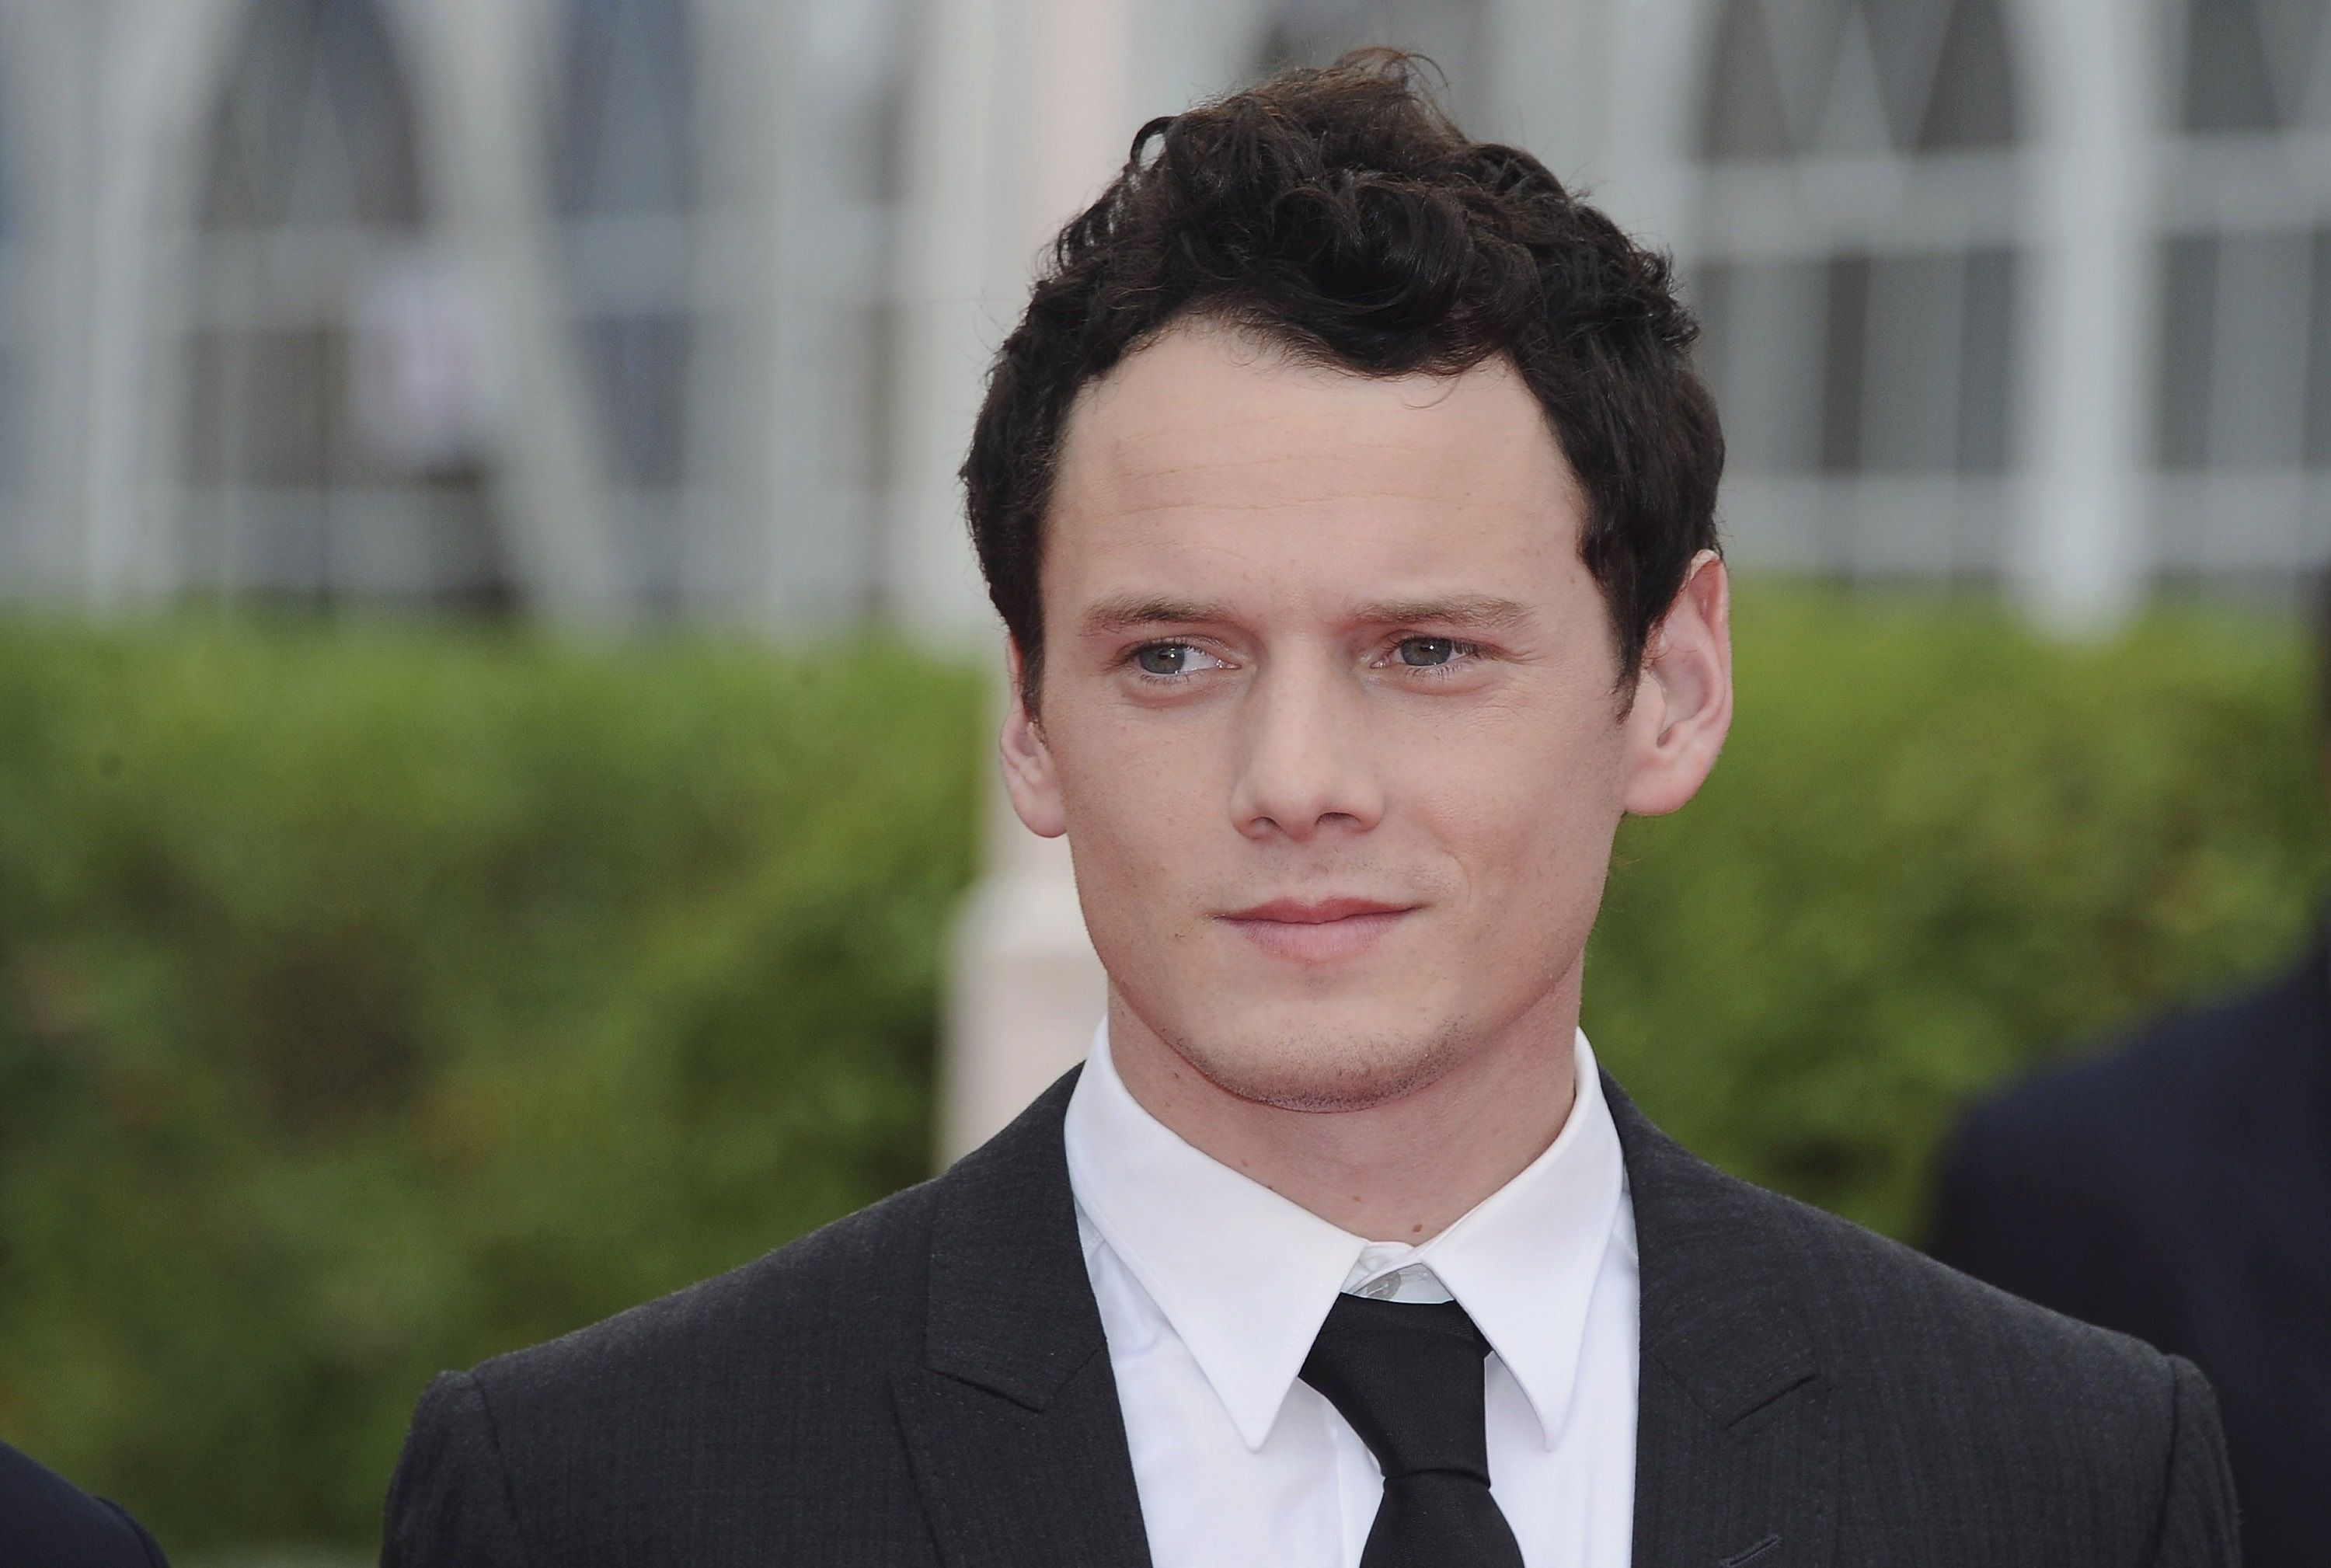 Chrysler Dealership Blames Anton Yelchin for His Death